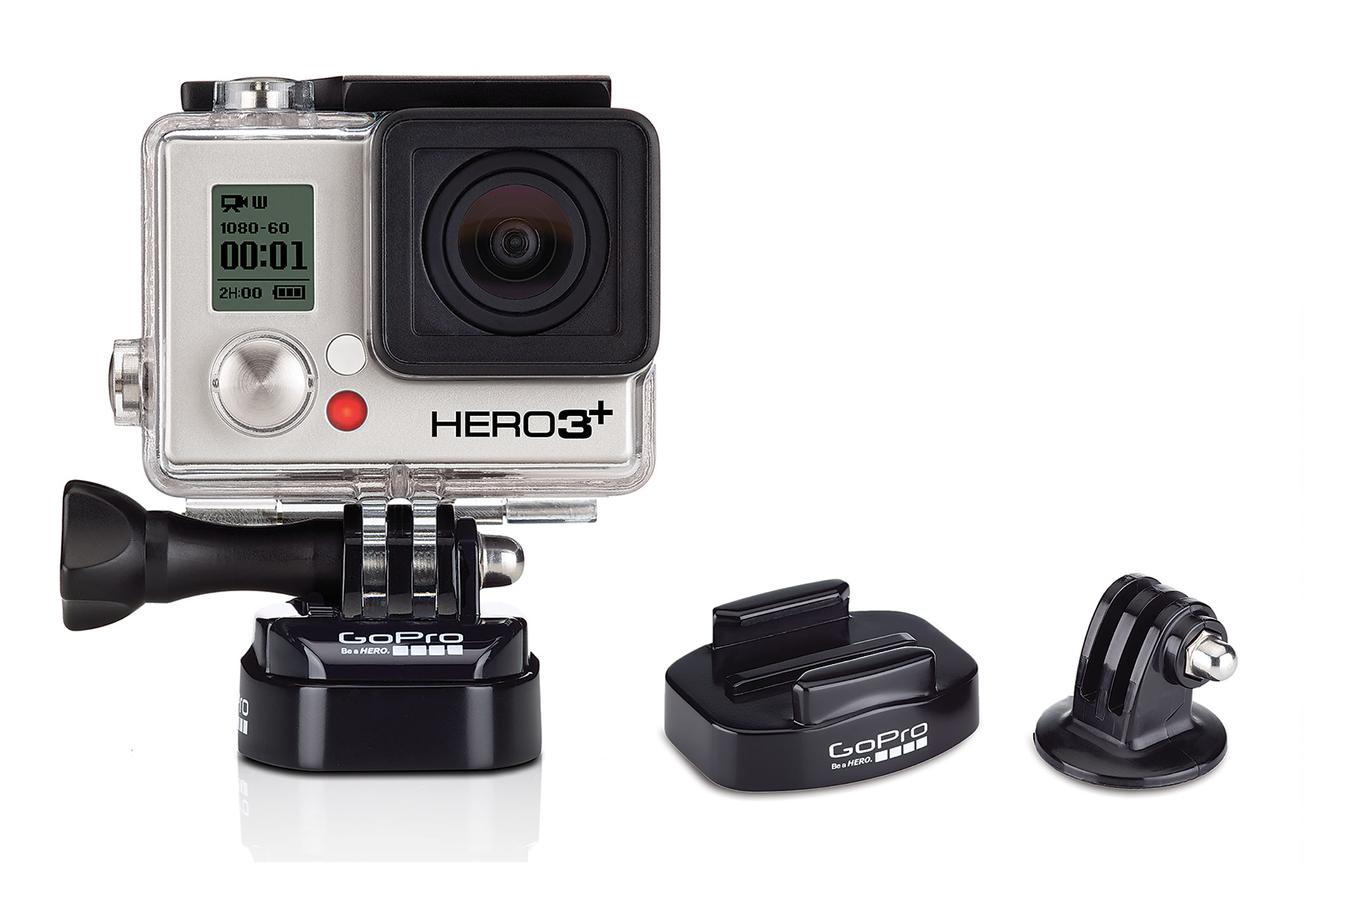 m achat photo camescope camera sportive gopro hero fixation perc